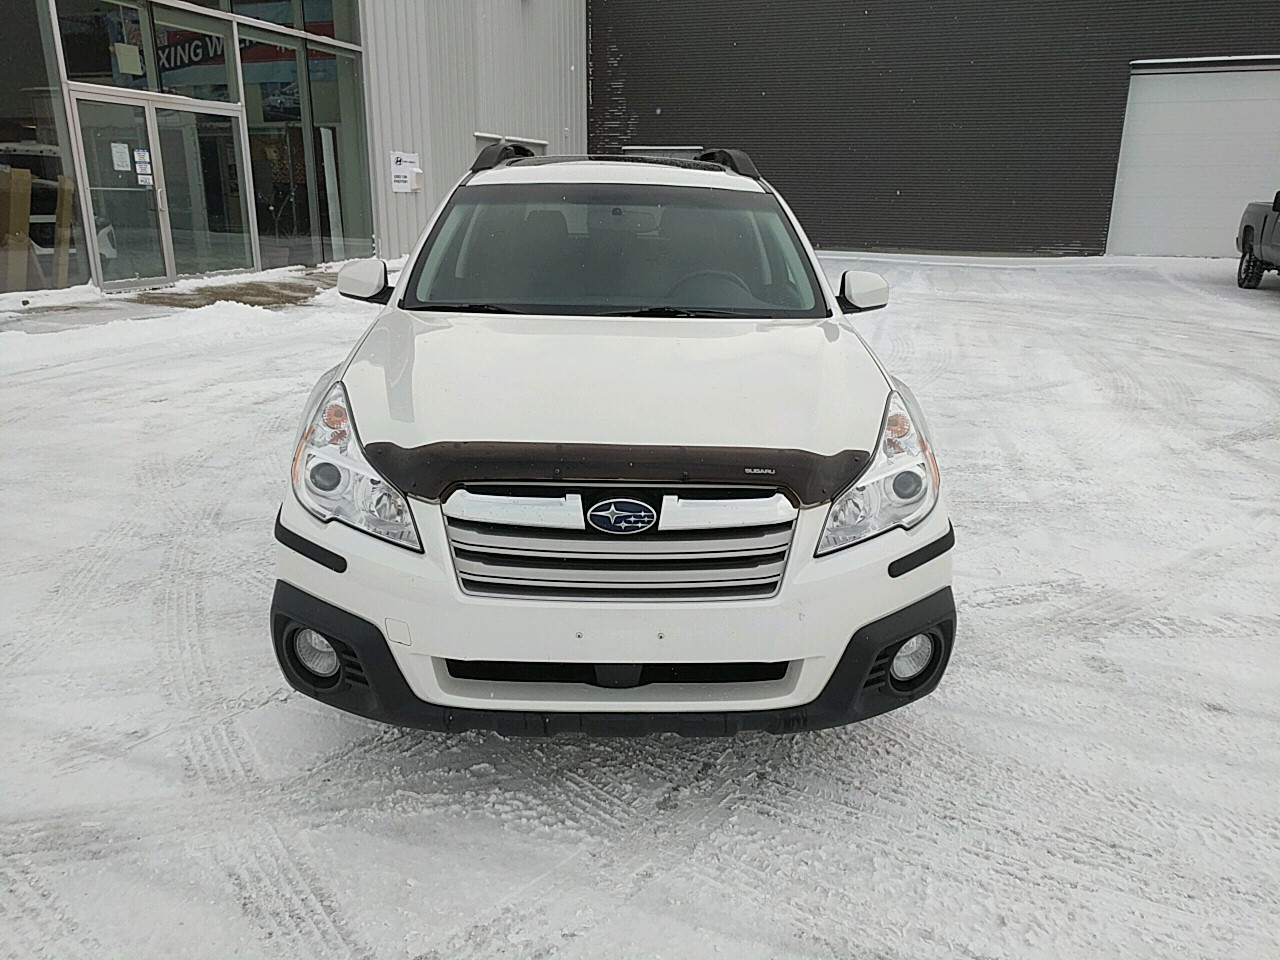 2013 Subaru Outback 2.5i Limited Package (Stk: 80022A) in Goderich - Image 8 of 18